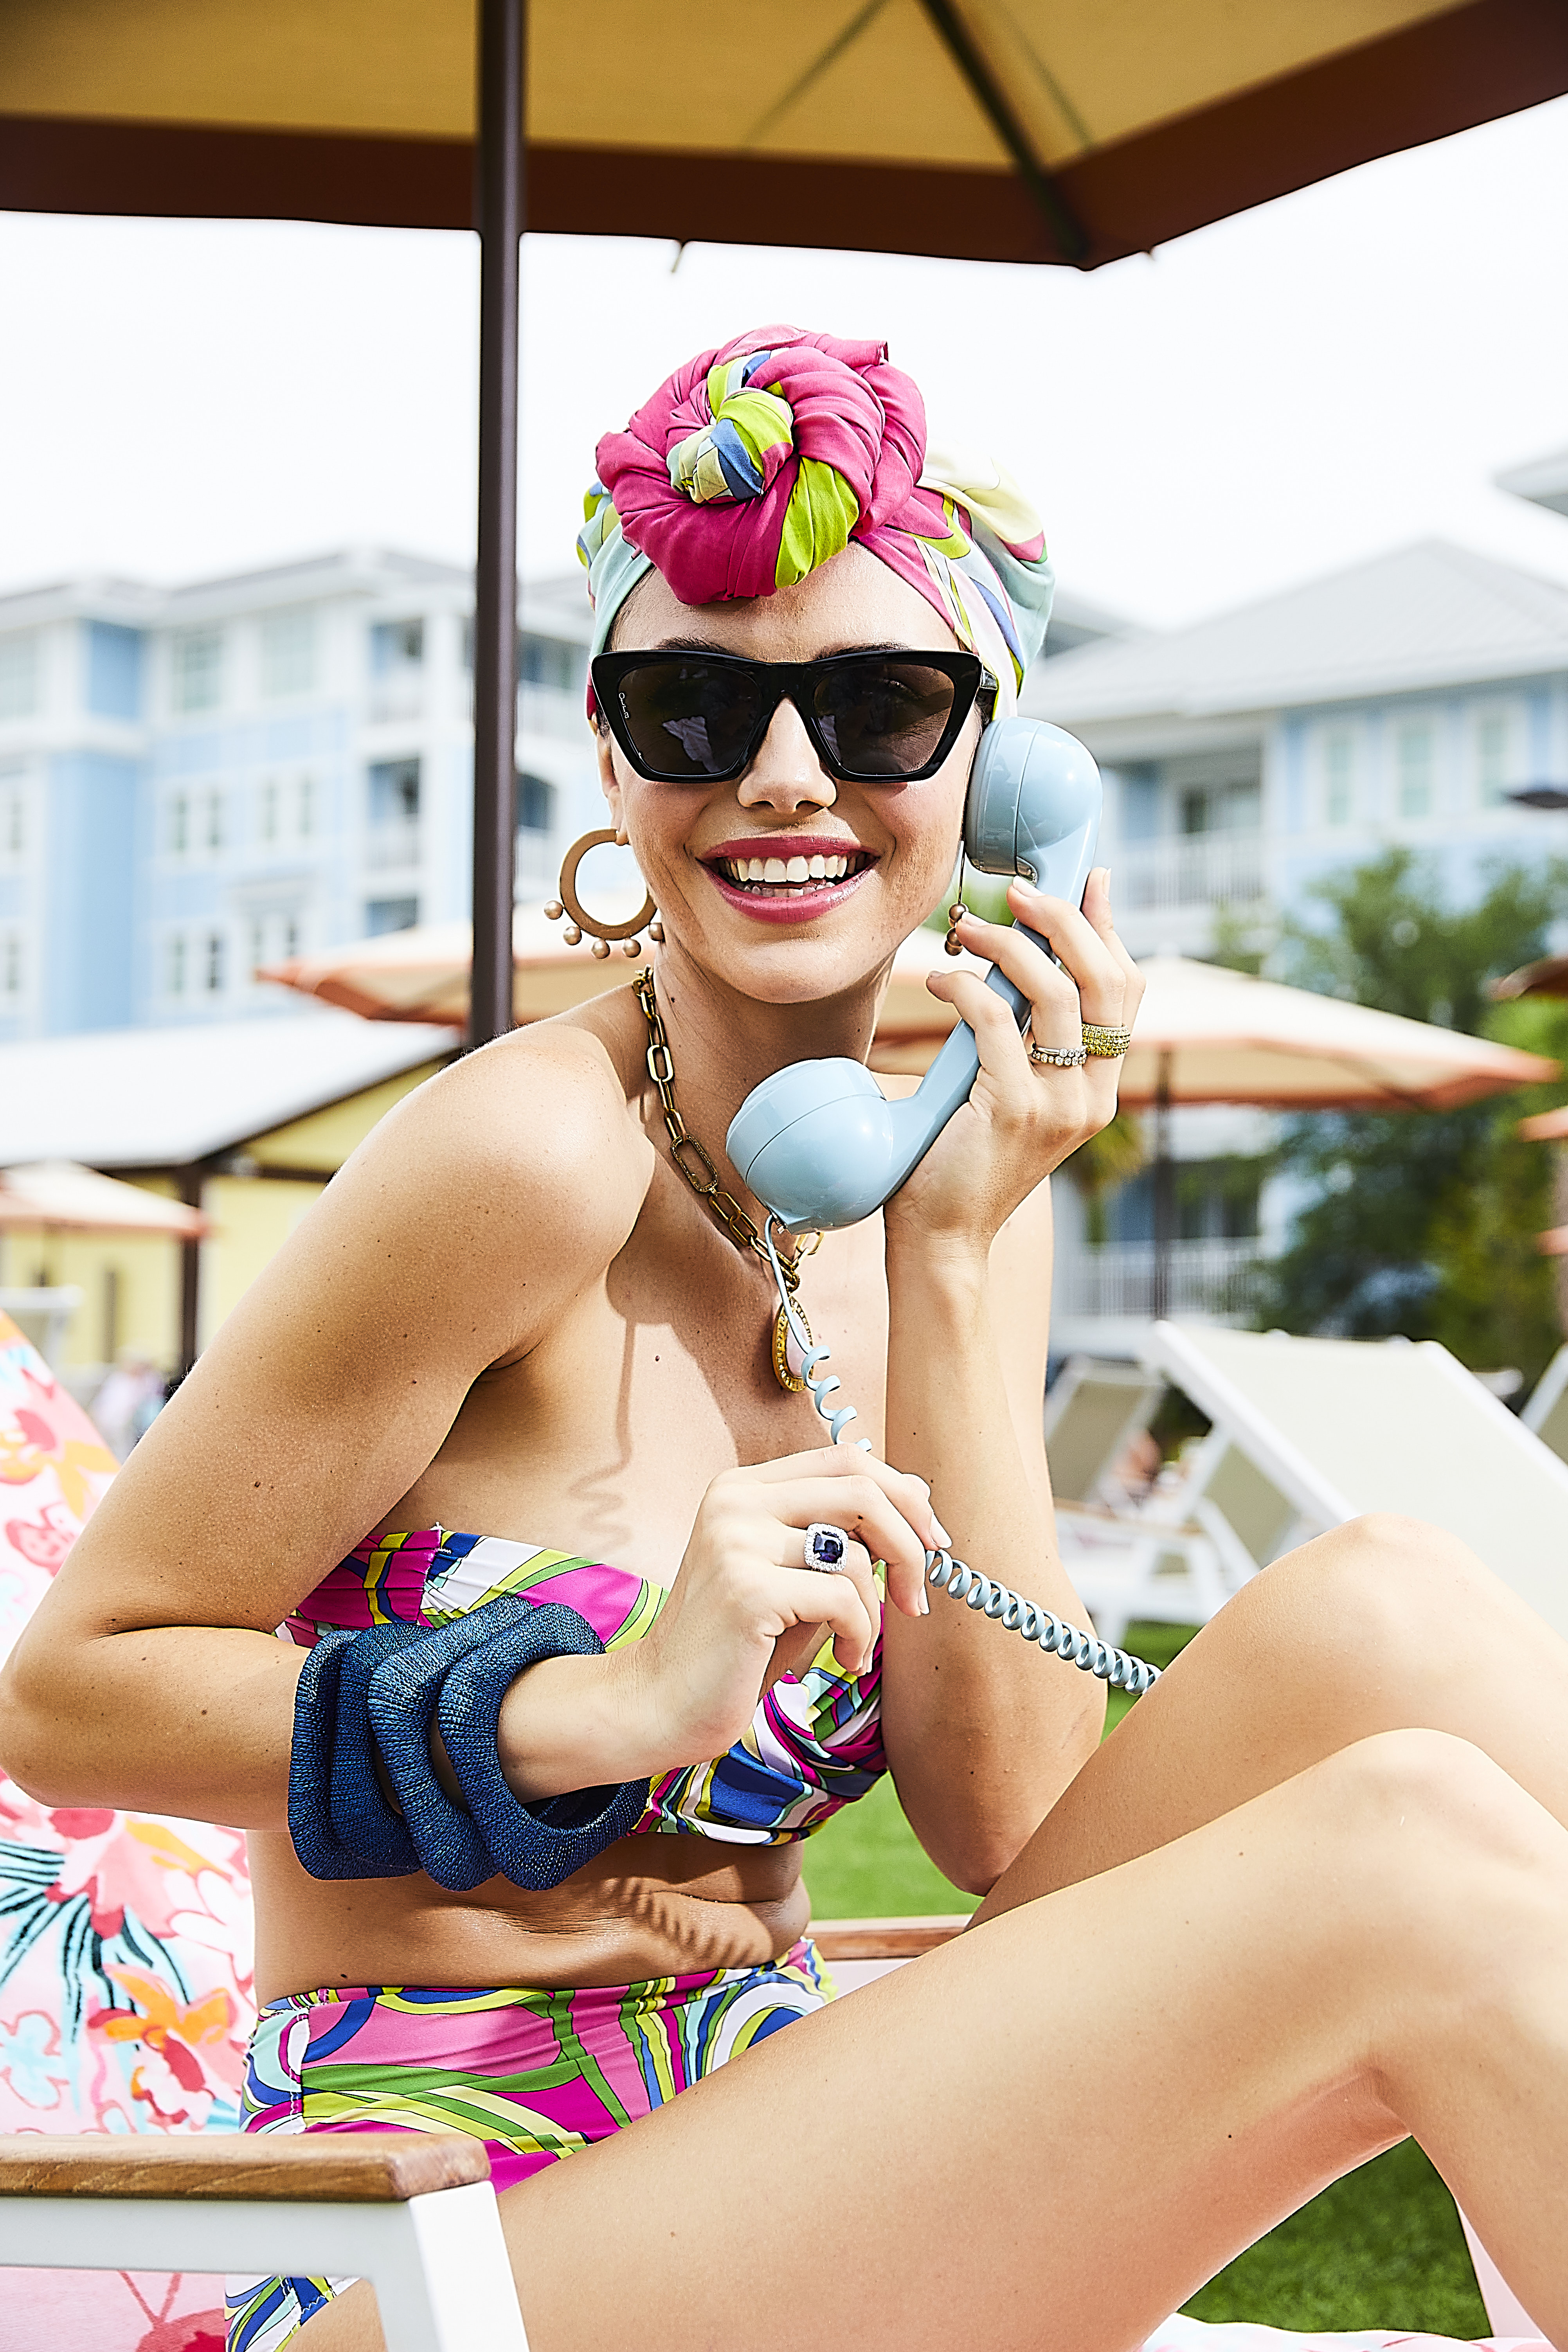 """Social Call: Twist-front bandeau, $94, high-waist bottom, $75, and short kaftan (worn as head scarf), $179, all in the """"Atrani""""print at Tara Grinna; Otra Eyewear """"Step Ahead"""" sunglasses, $60 at Rhodes Boutique; Alexis Bittar pearl-studded hoop earrings, $108, The Woods Fine Jewelry brass chain, price upon request, and pink and opal diamond pendant, $770, and Candy Shop Vintage blue-thread bangles, $48 each, all at Gwynn's of Mount Pleasant; Hearts on Fire bezel diamond band, $2,500 at Sandler's Diamonds & Time; yellow sapphire eternity band, $4,900, and sapphire and diamond cocktail ring, $19,000, both at Diamonds Direct; Spartina 449 """"Pink Lemonade"""" beach towel, $33 at Spartina 449"""